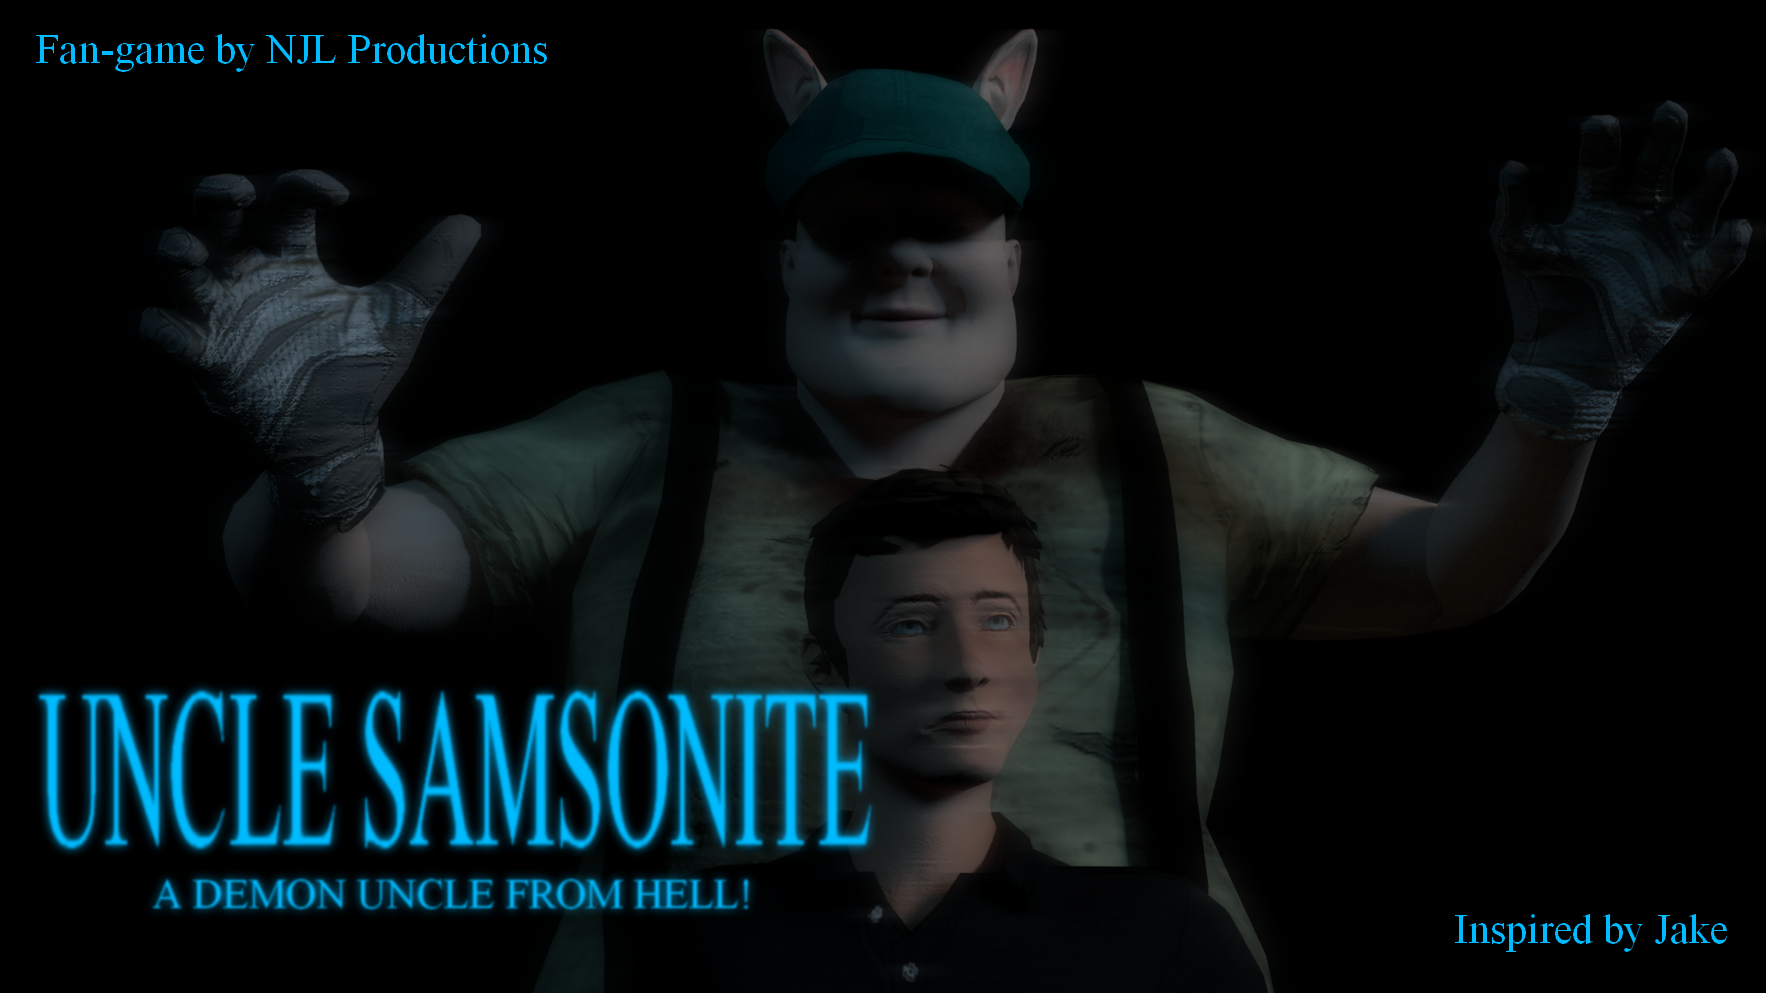 UNCLE SAMSONITE: A DEMON UNCLE FROM HELL!